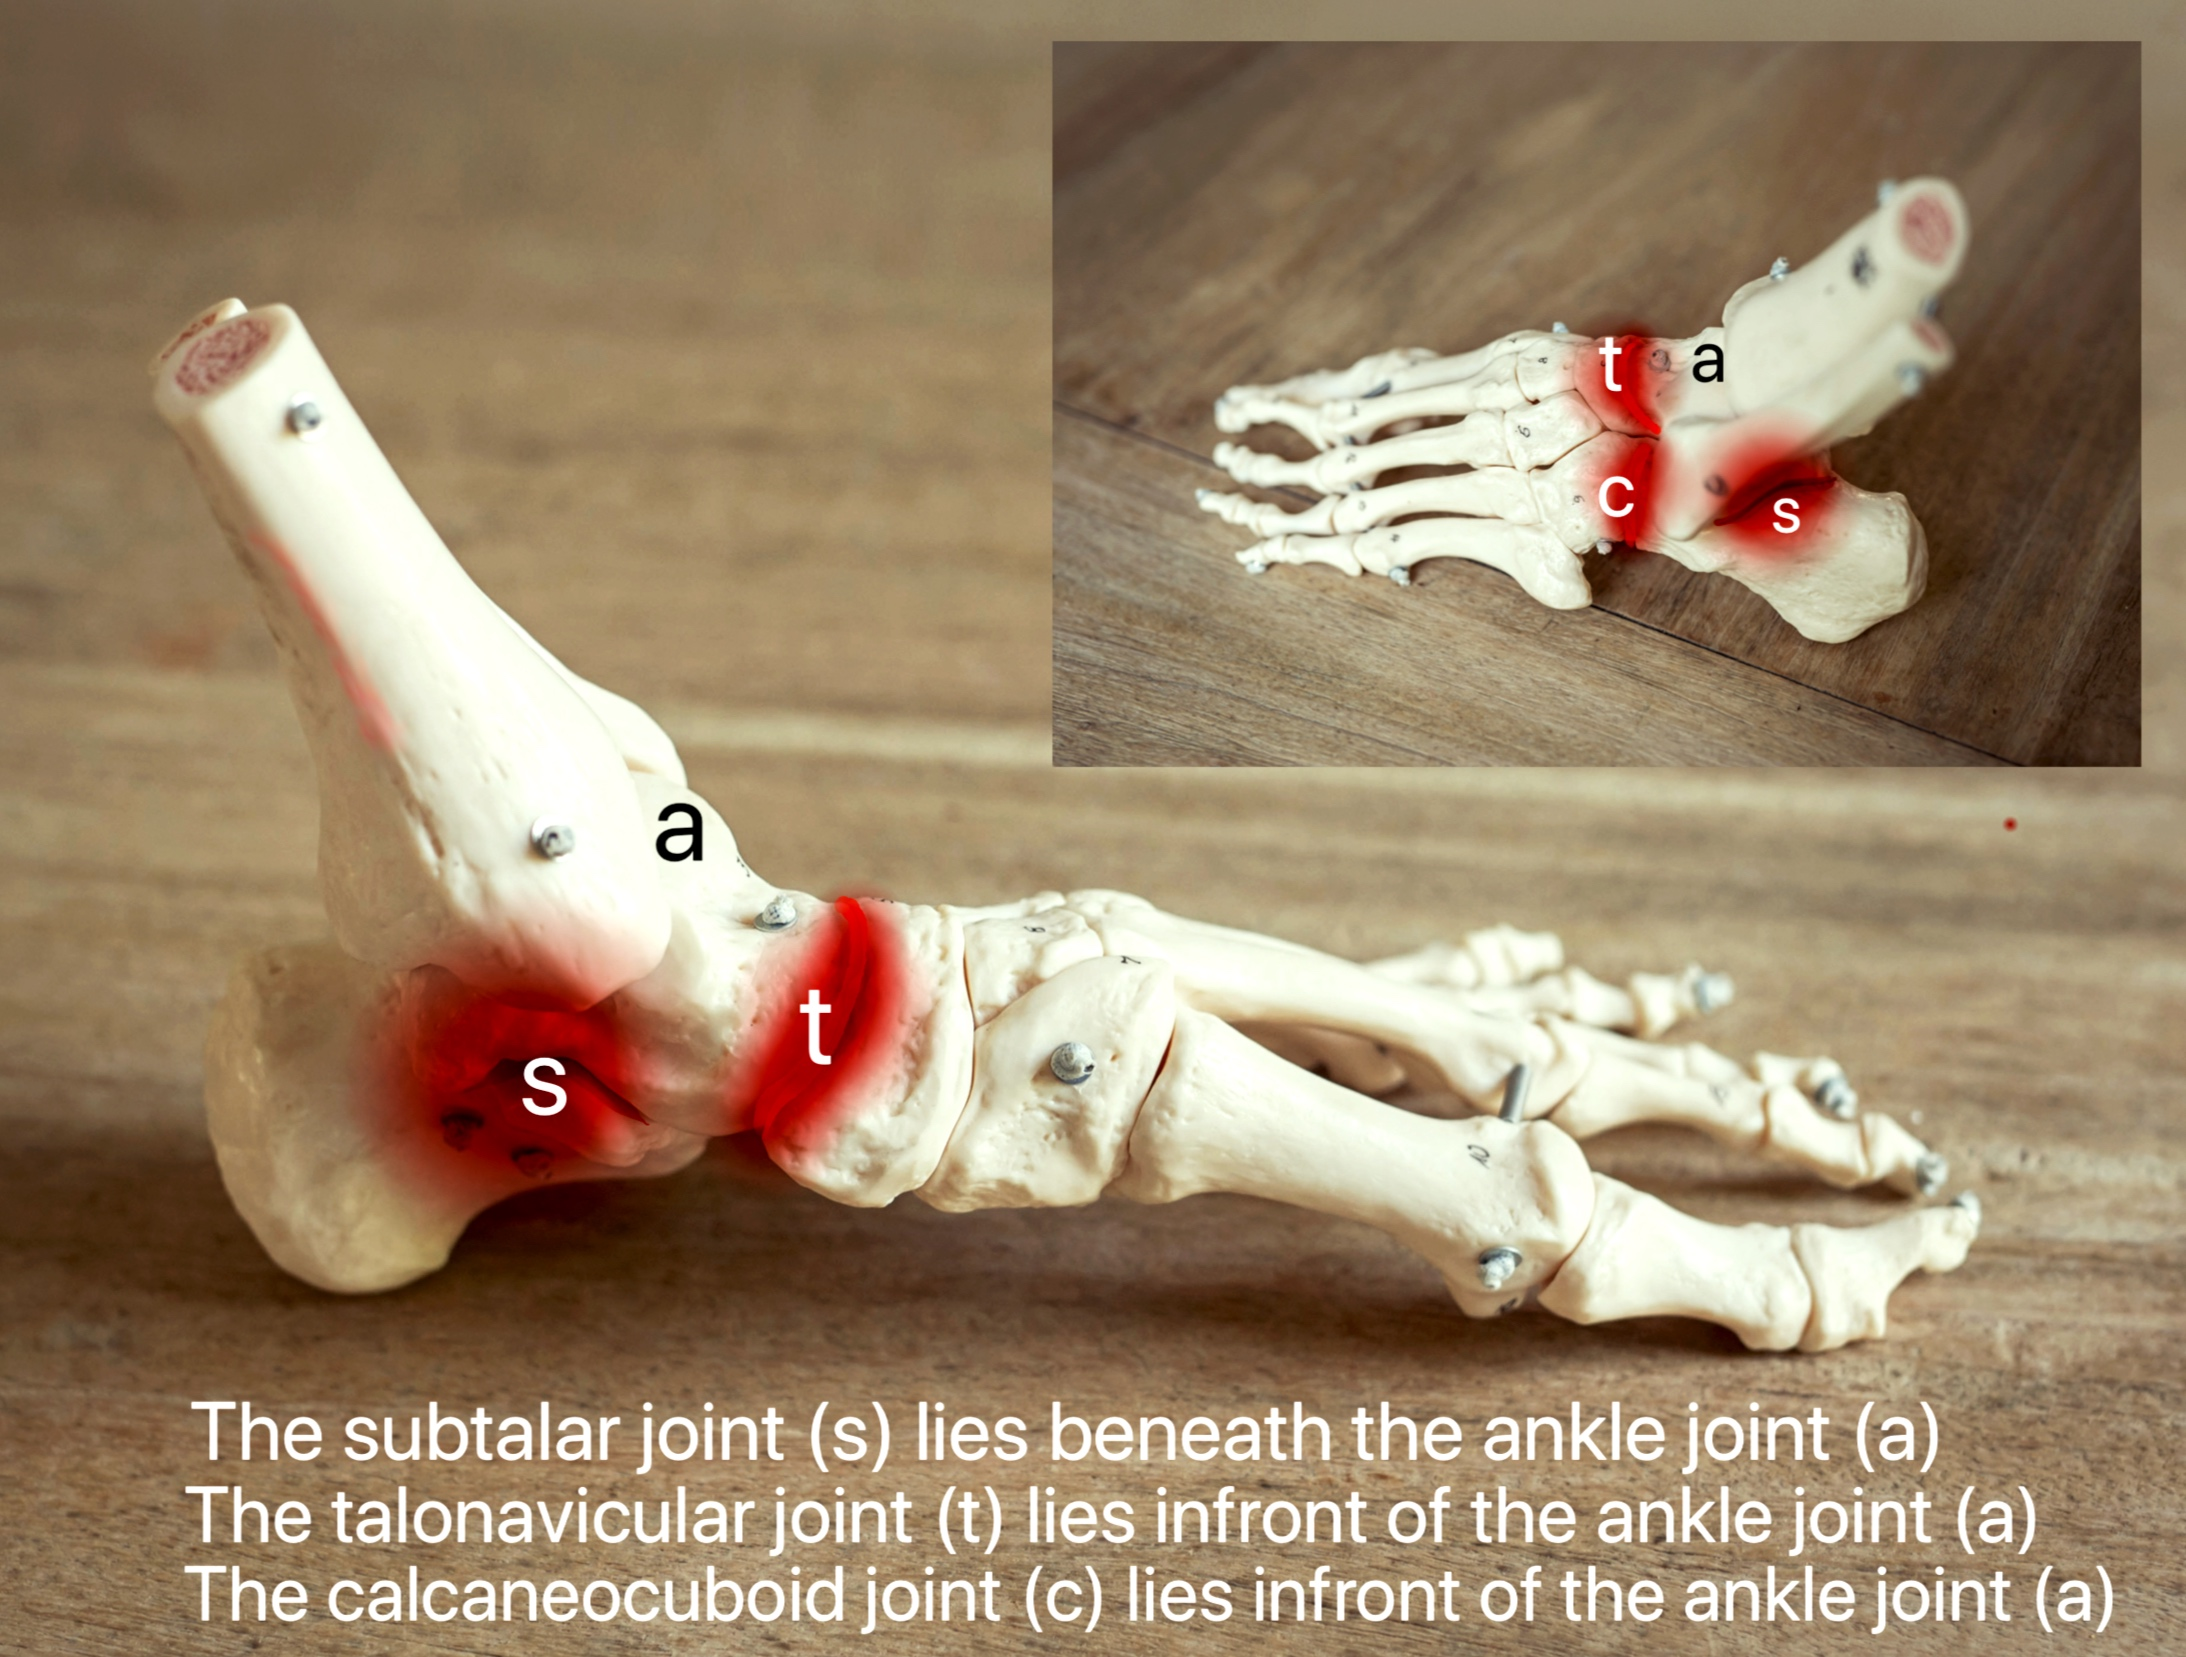 The Triple Joint Complex - The triple joint complex allows flexibility of the hind foot and also contributes about 1/3rd of up and down movement at the ankle. There are 3 joints that make up the 'triple joint complex':1. Subtalar joint (s)2. Talonavicular joint (t)3. Calcaneocuboid joint (c)